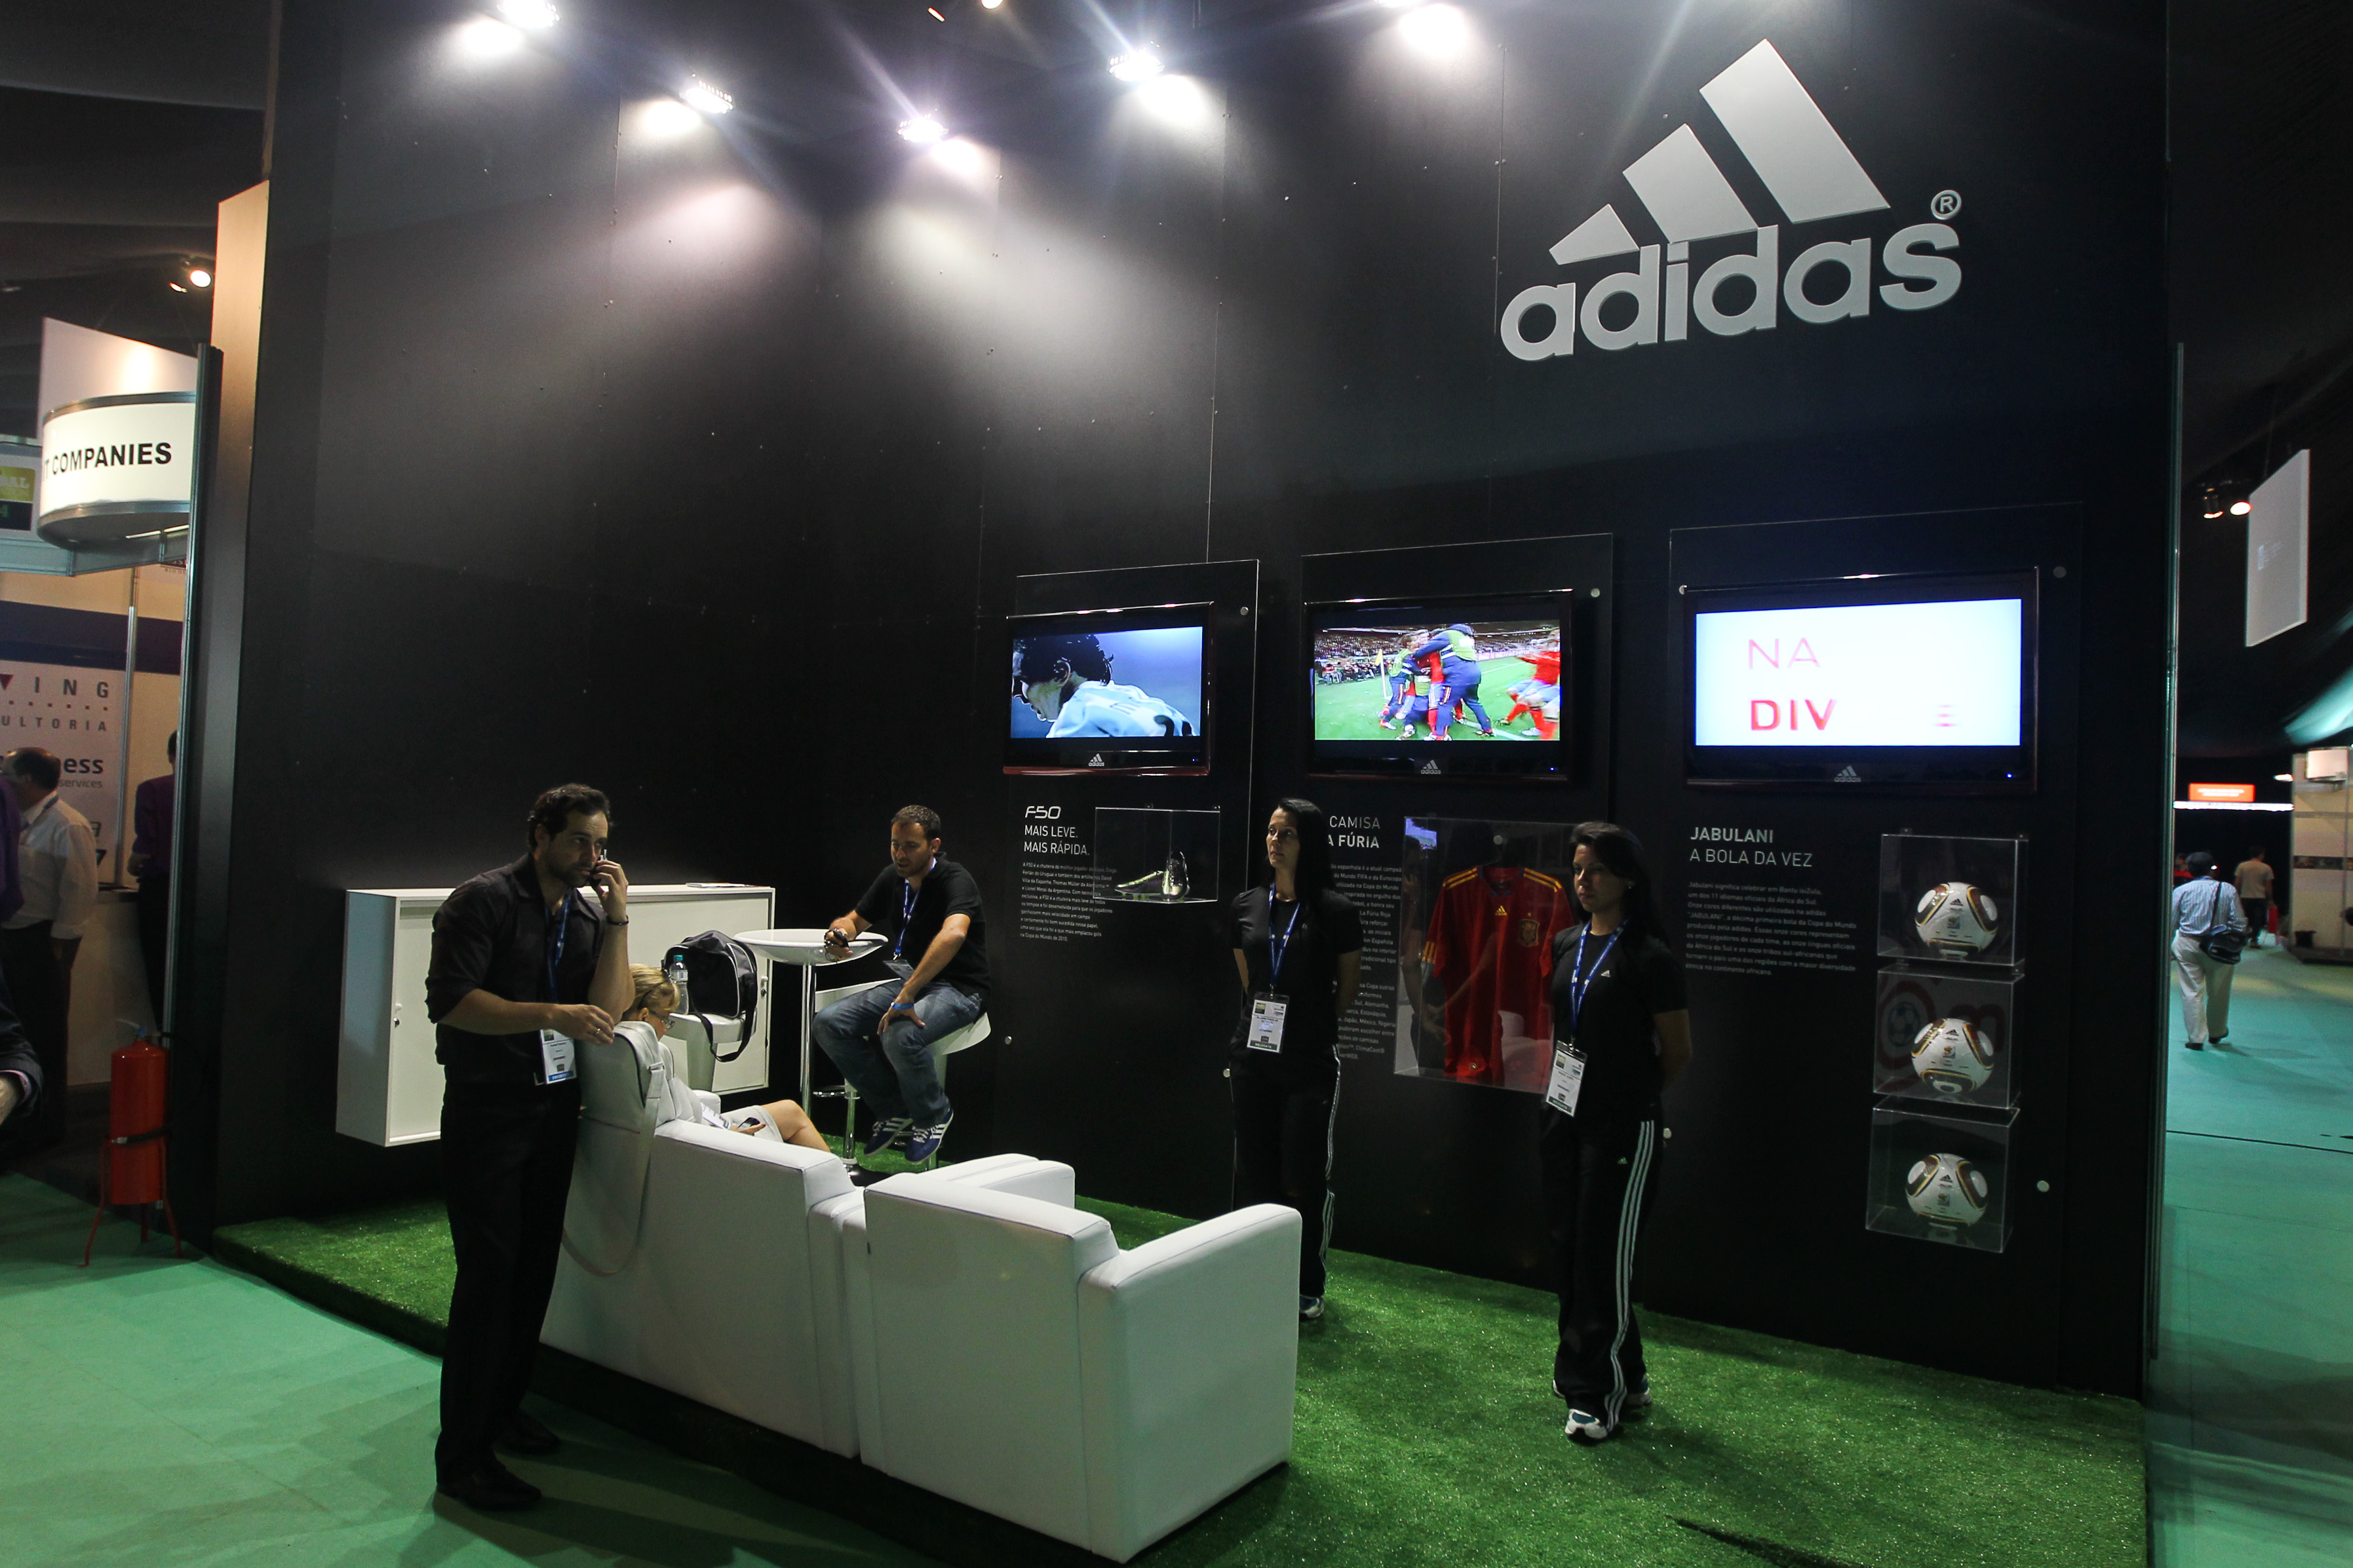 Exhibition Stand Wiki : File adidas stand g wikimedia commons